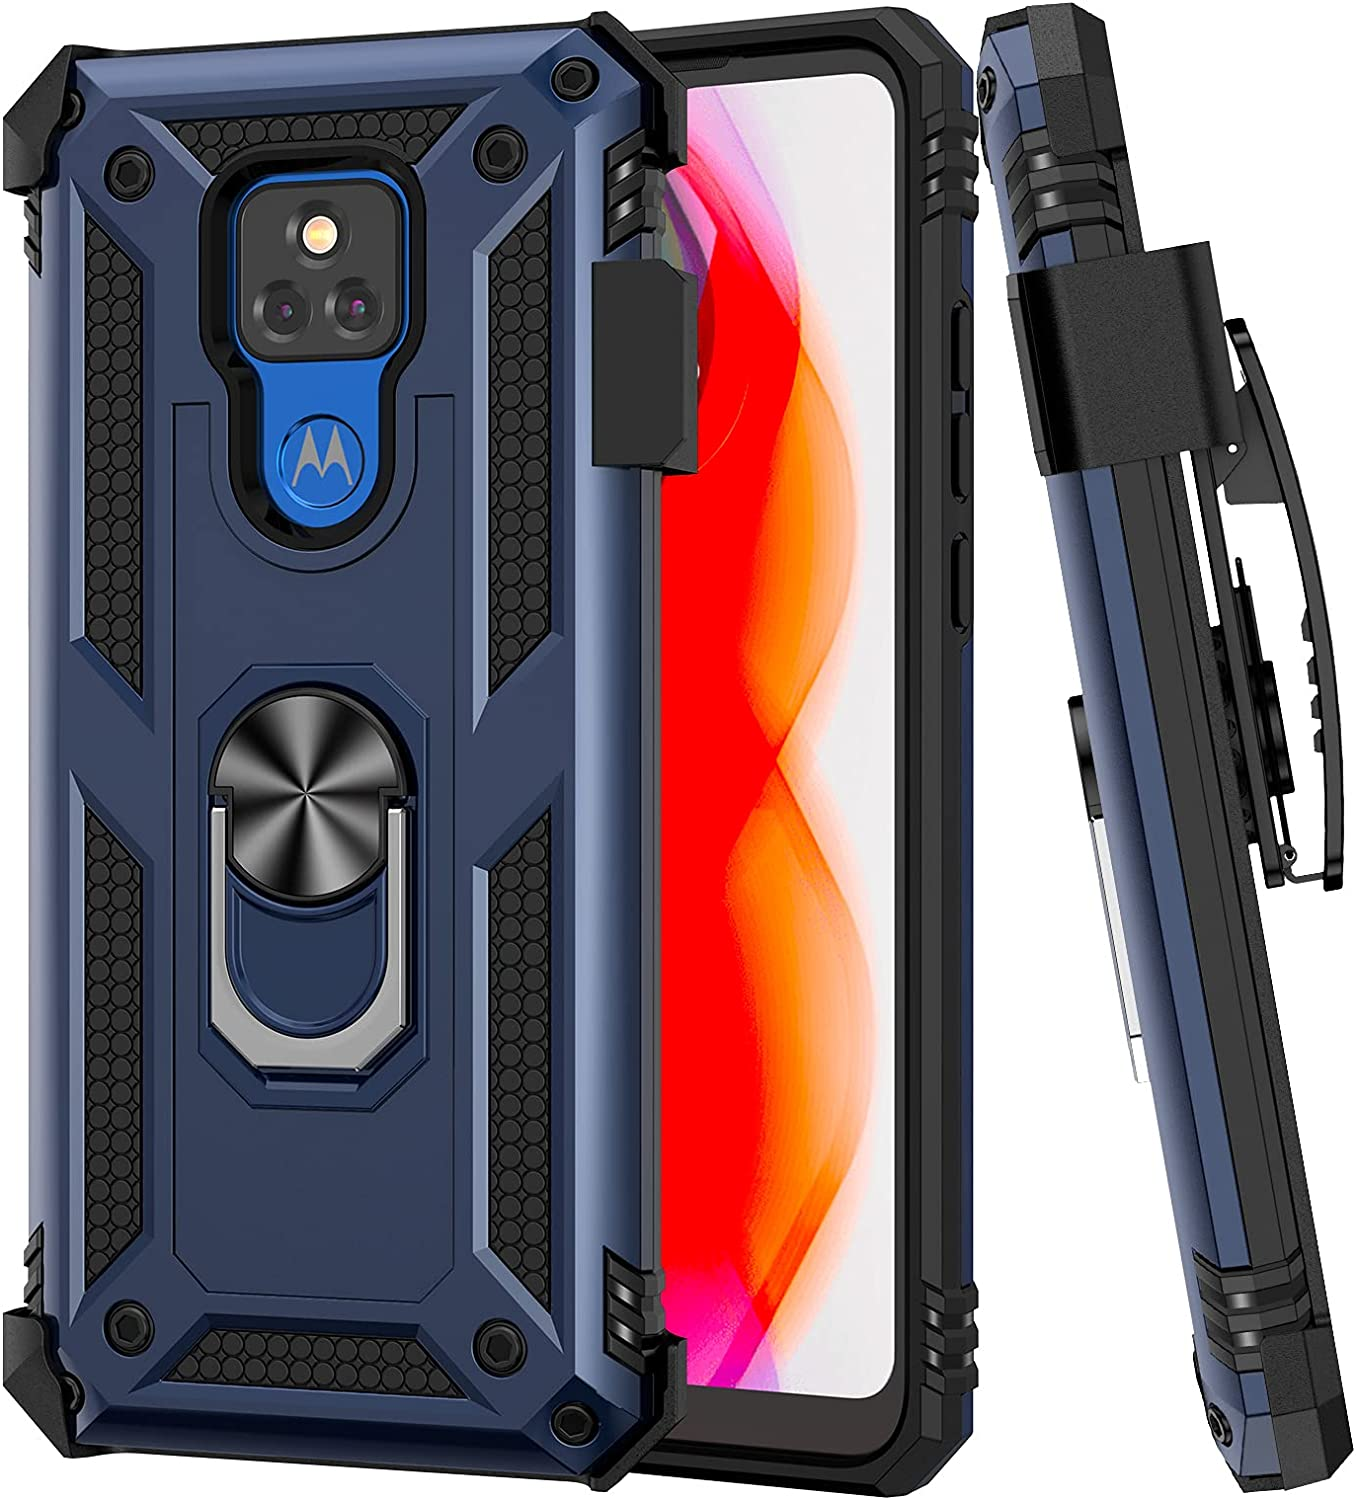 Ruky Moto G Play 2021 Case, Moto G Play 2021 Case with Belt Clip Holder, Military Grade 360° Ring Holder Kickstand with Magnetic Shockproof Anti Scratch Phone Case for Moto G Play 2021, Blue